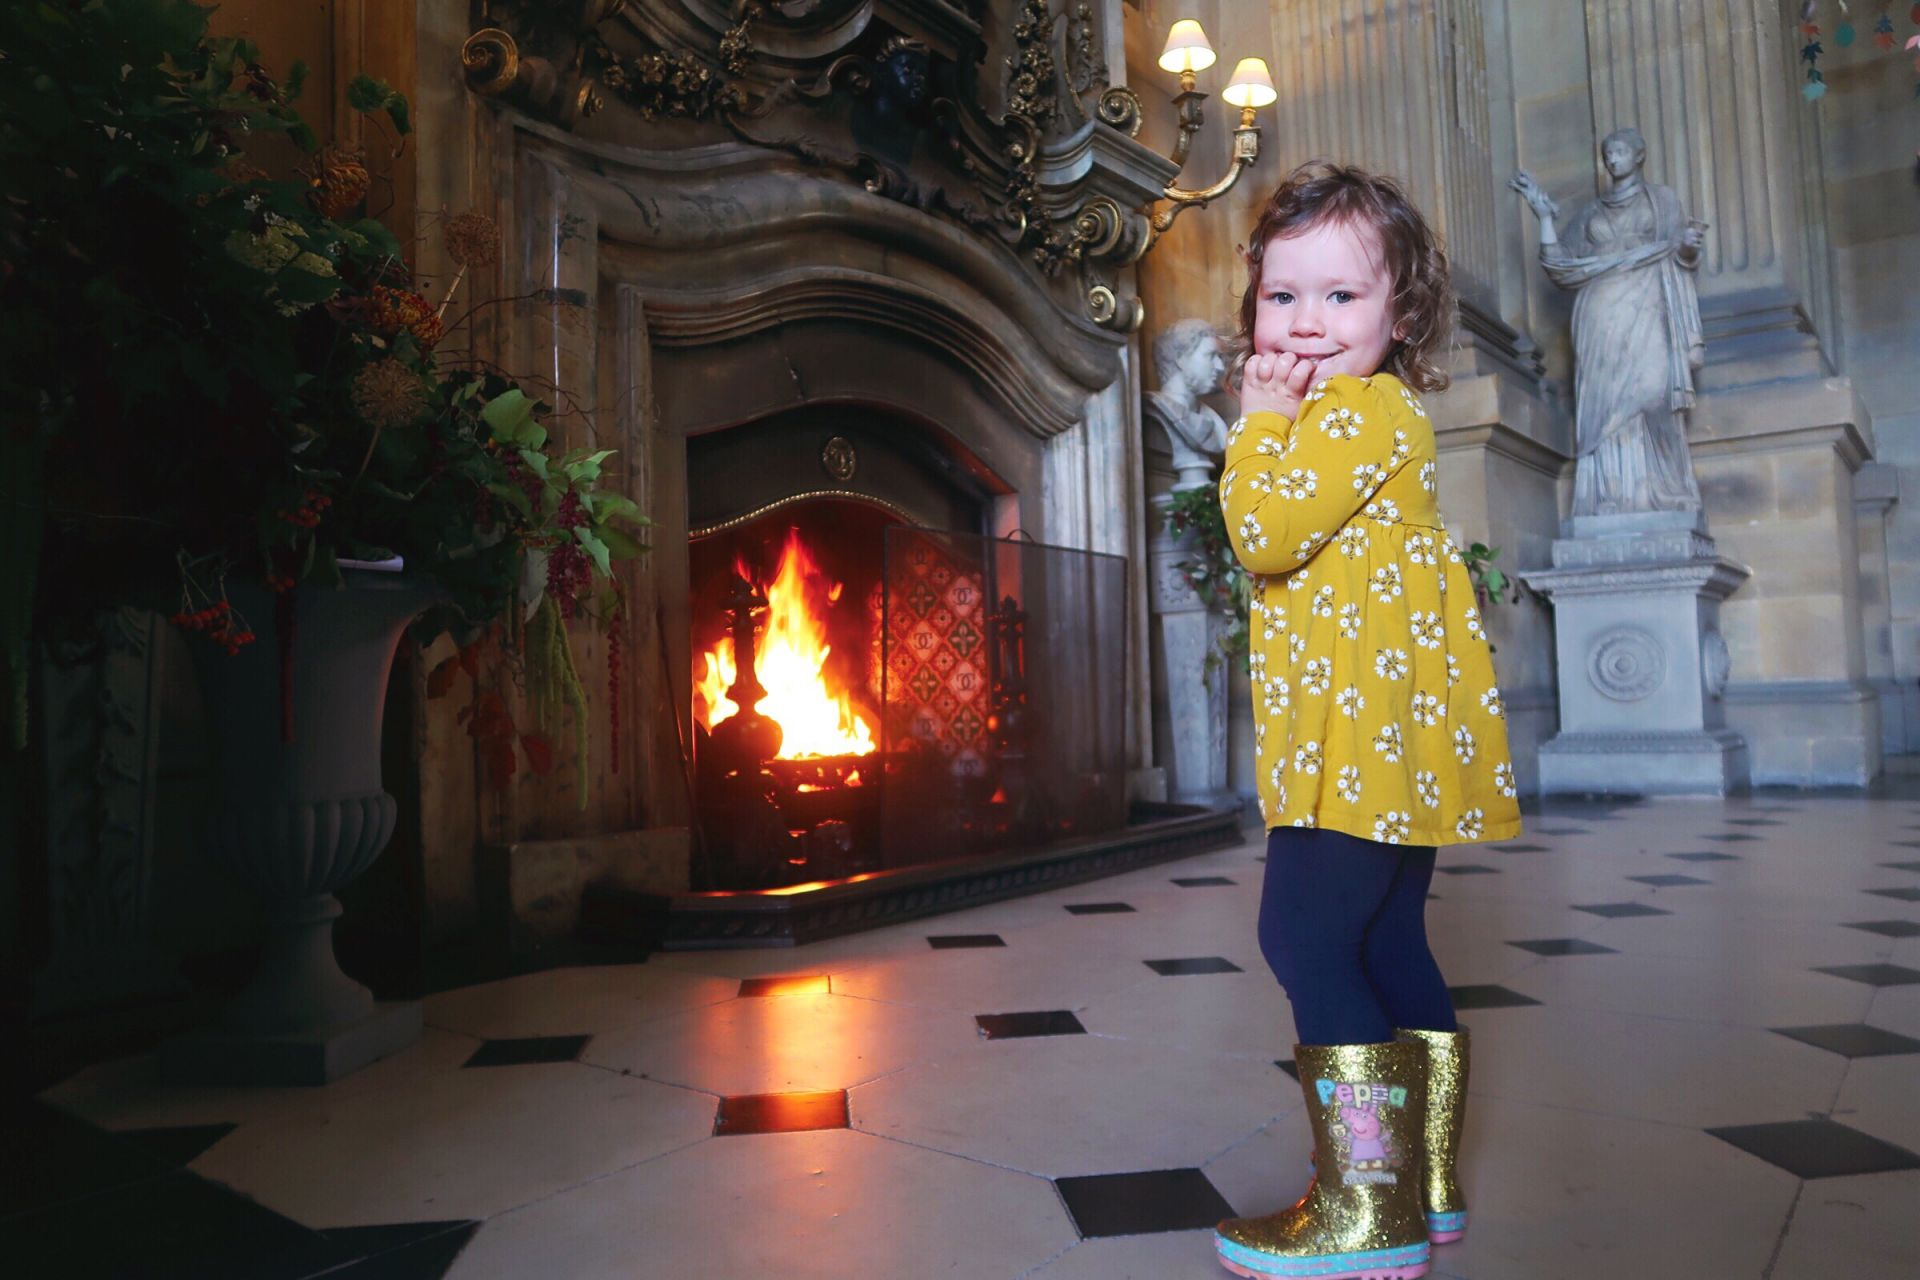 Little girl in front of an open fire